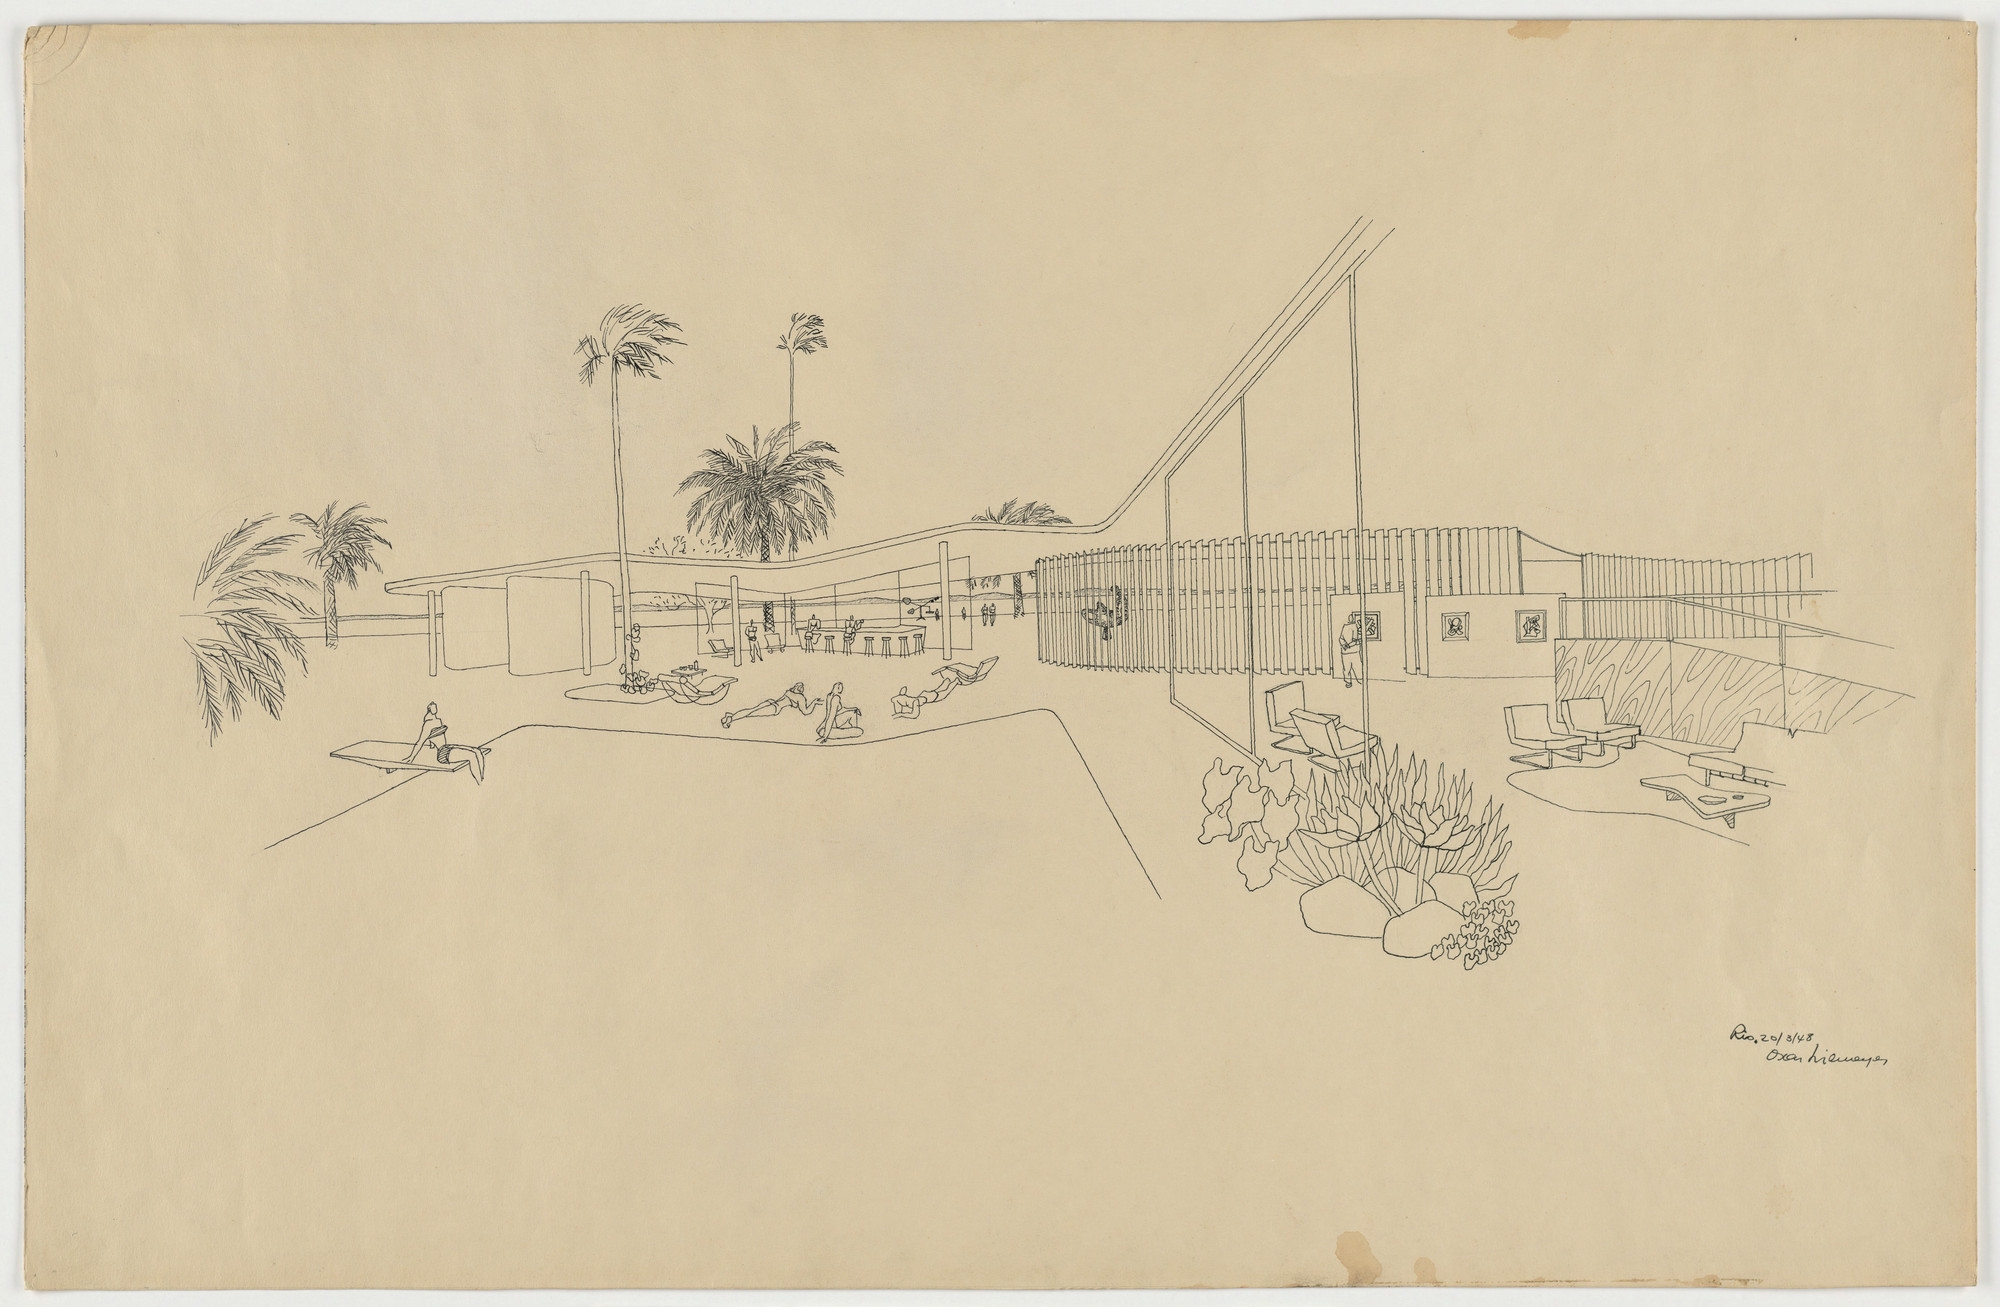 Oscar Niemeyer, Roberto Burle Marx. Beach House for Mr. and Mrs. Burton Tremaine, project, Santa Barbara, California (Exterior perspective, over pool with living room on right). 1948